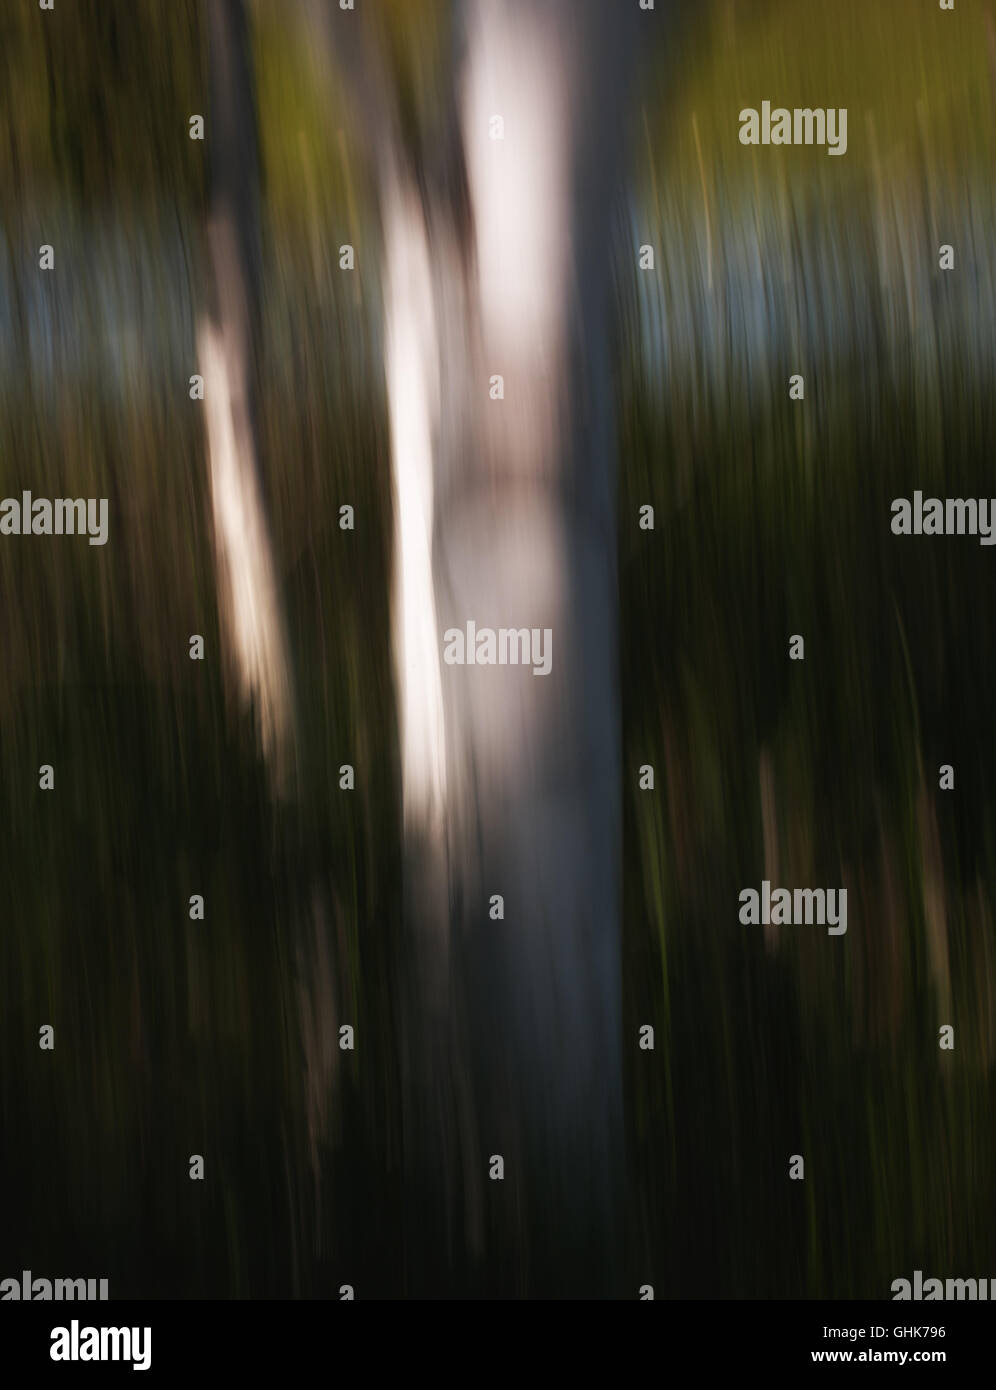 Artistic motion blur of trees and foliage. - Stock Image